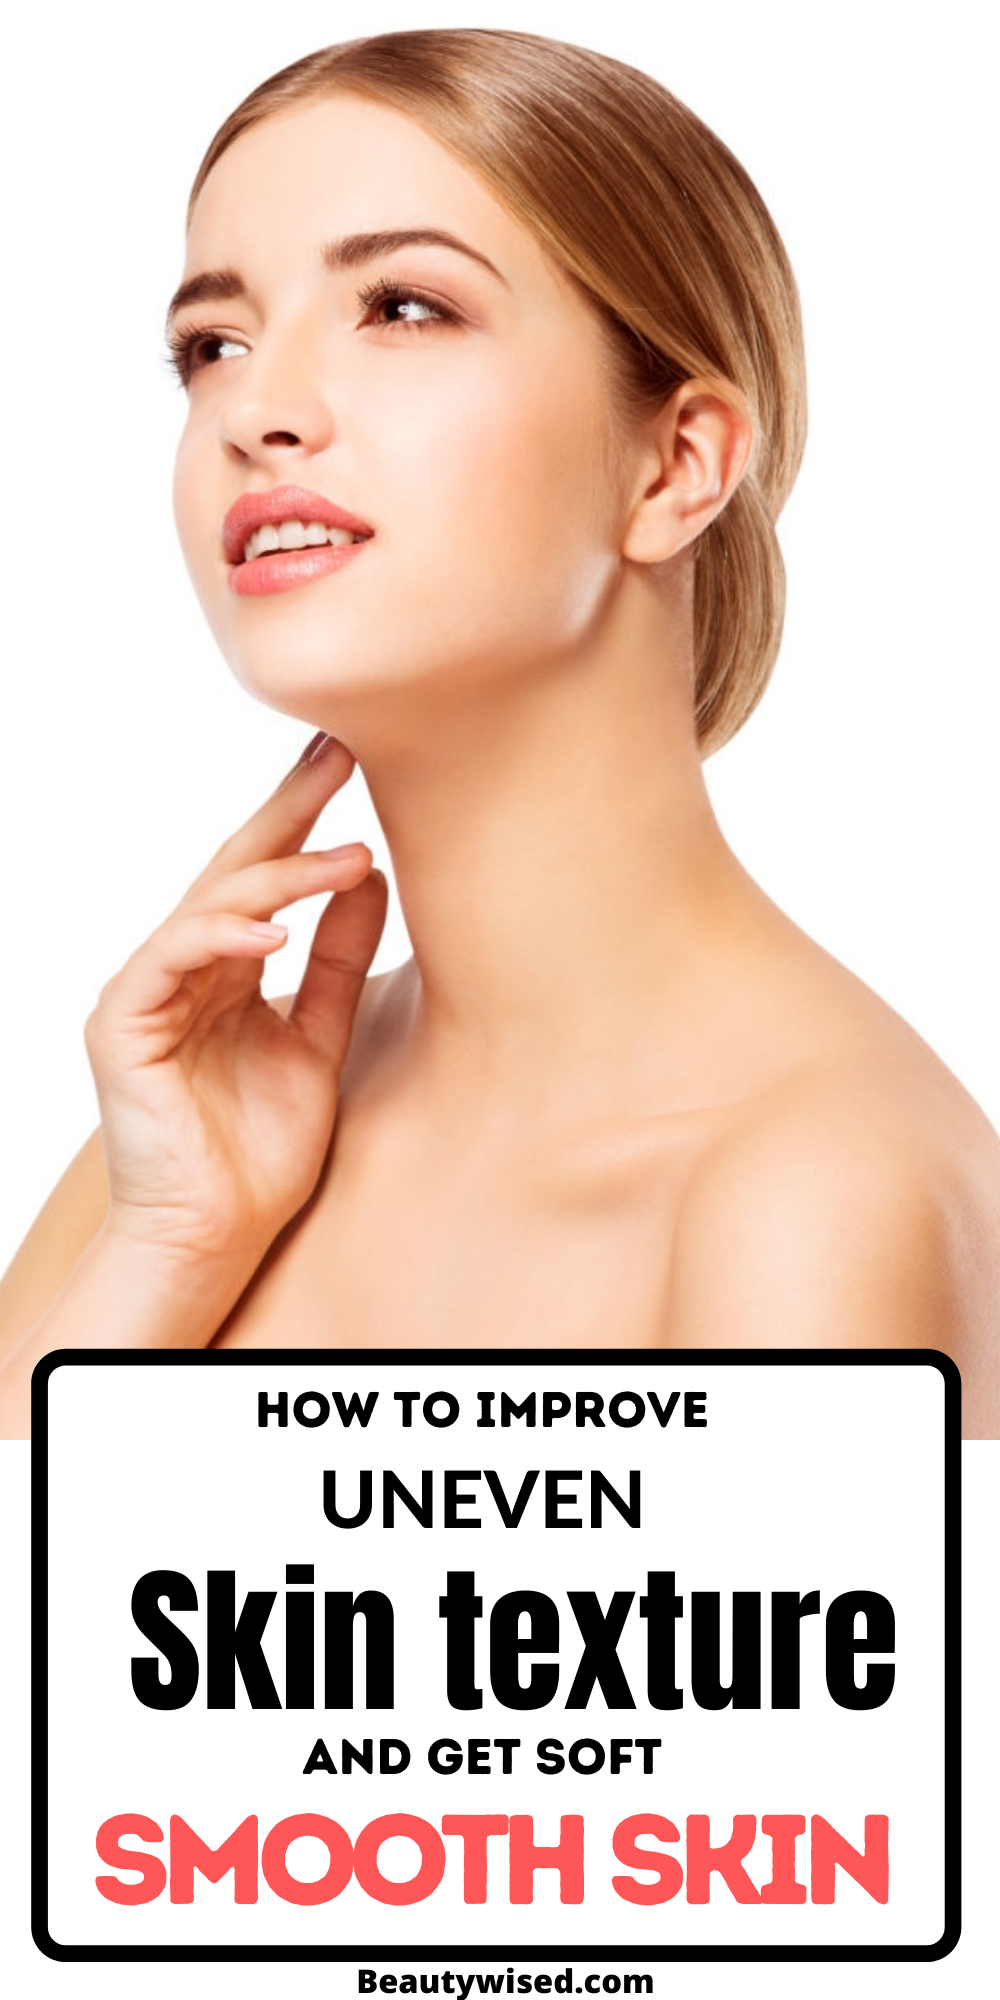 15 supereffective tips & remedies to get rid of dry rough